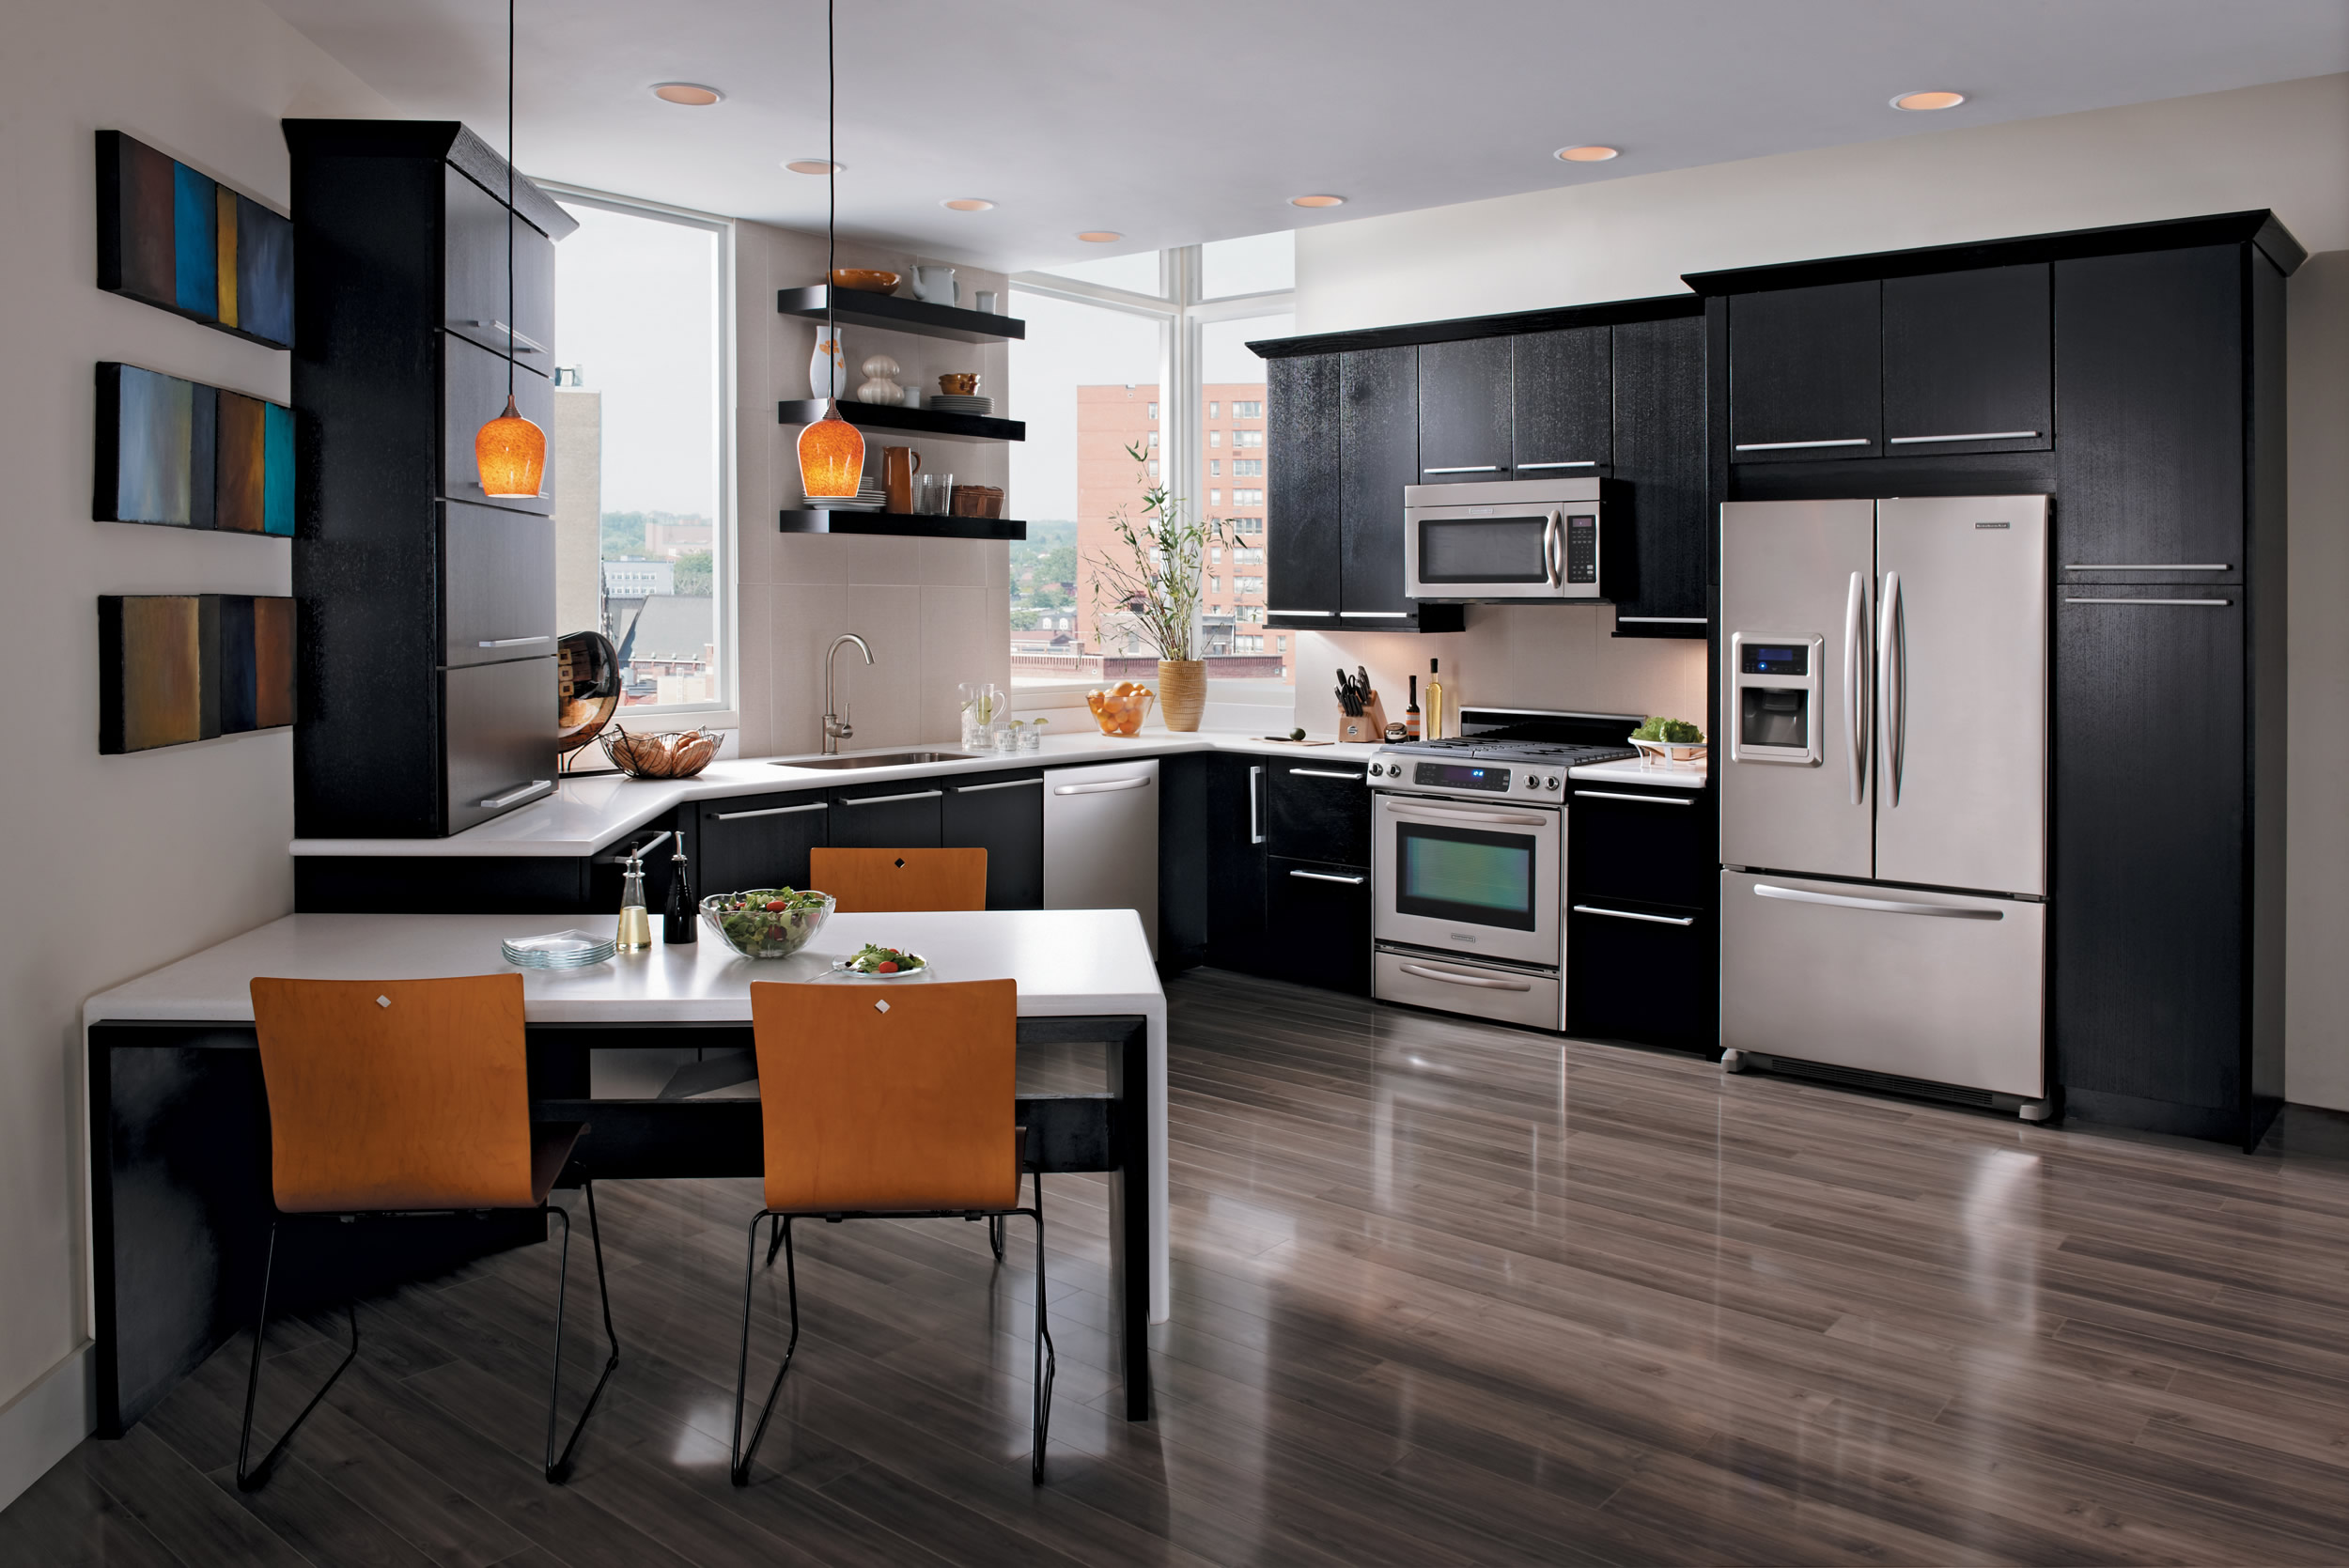 black kitchen cabinet modern with corner stove and storage for best kitchen modern with modern dining table sets and also black floating shelf kitchen with ideas flooring